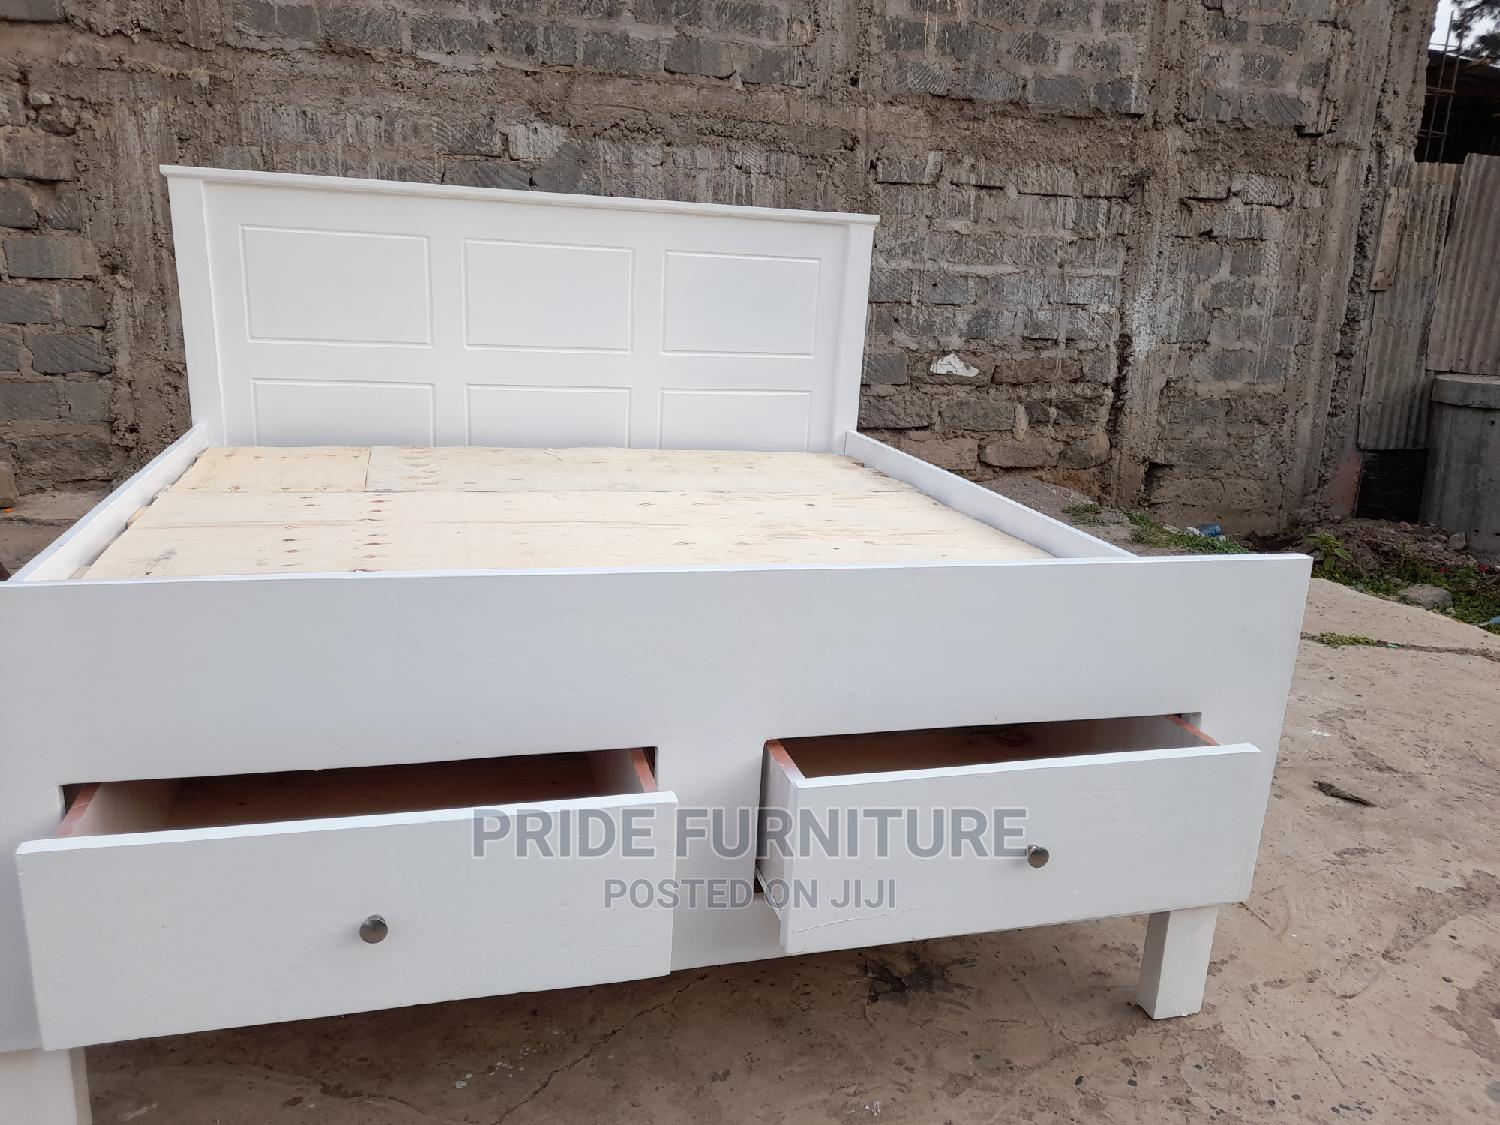 Modern 6by6 Drawer Beds   Furniture for sale in South B, Nairobi, Kenya